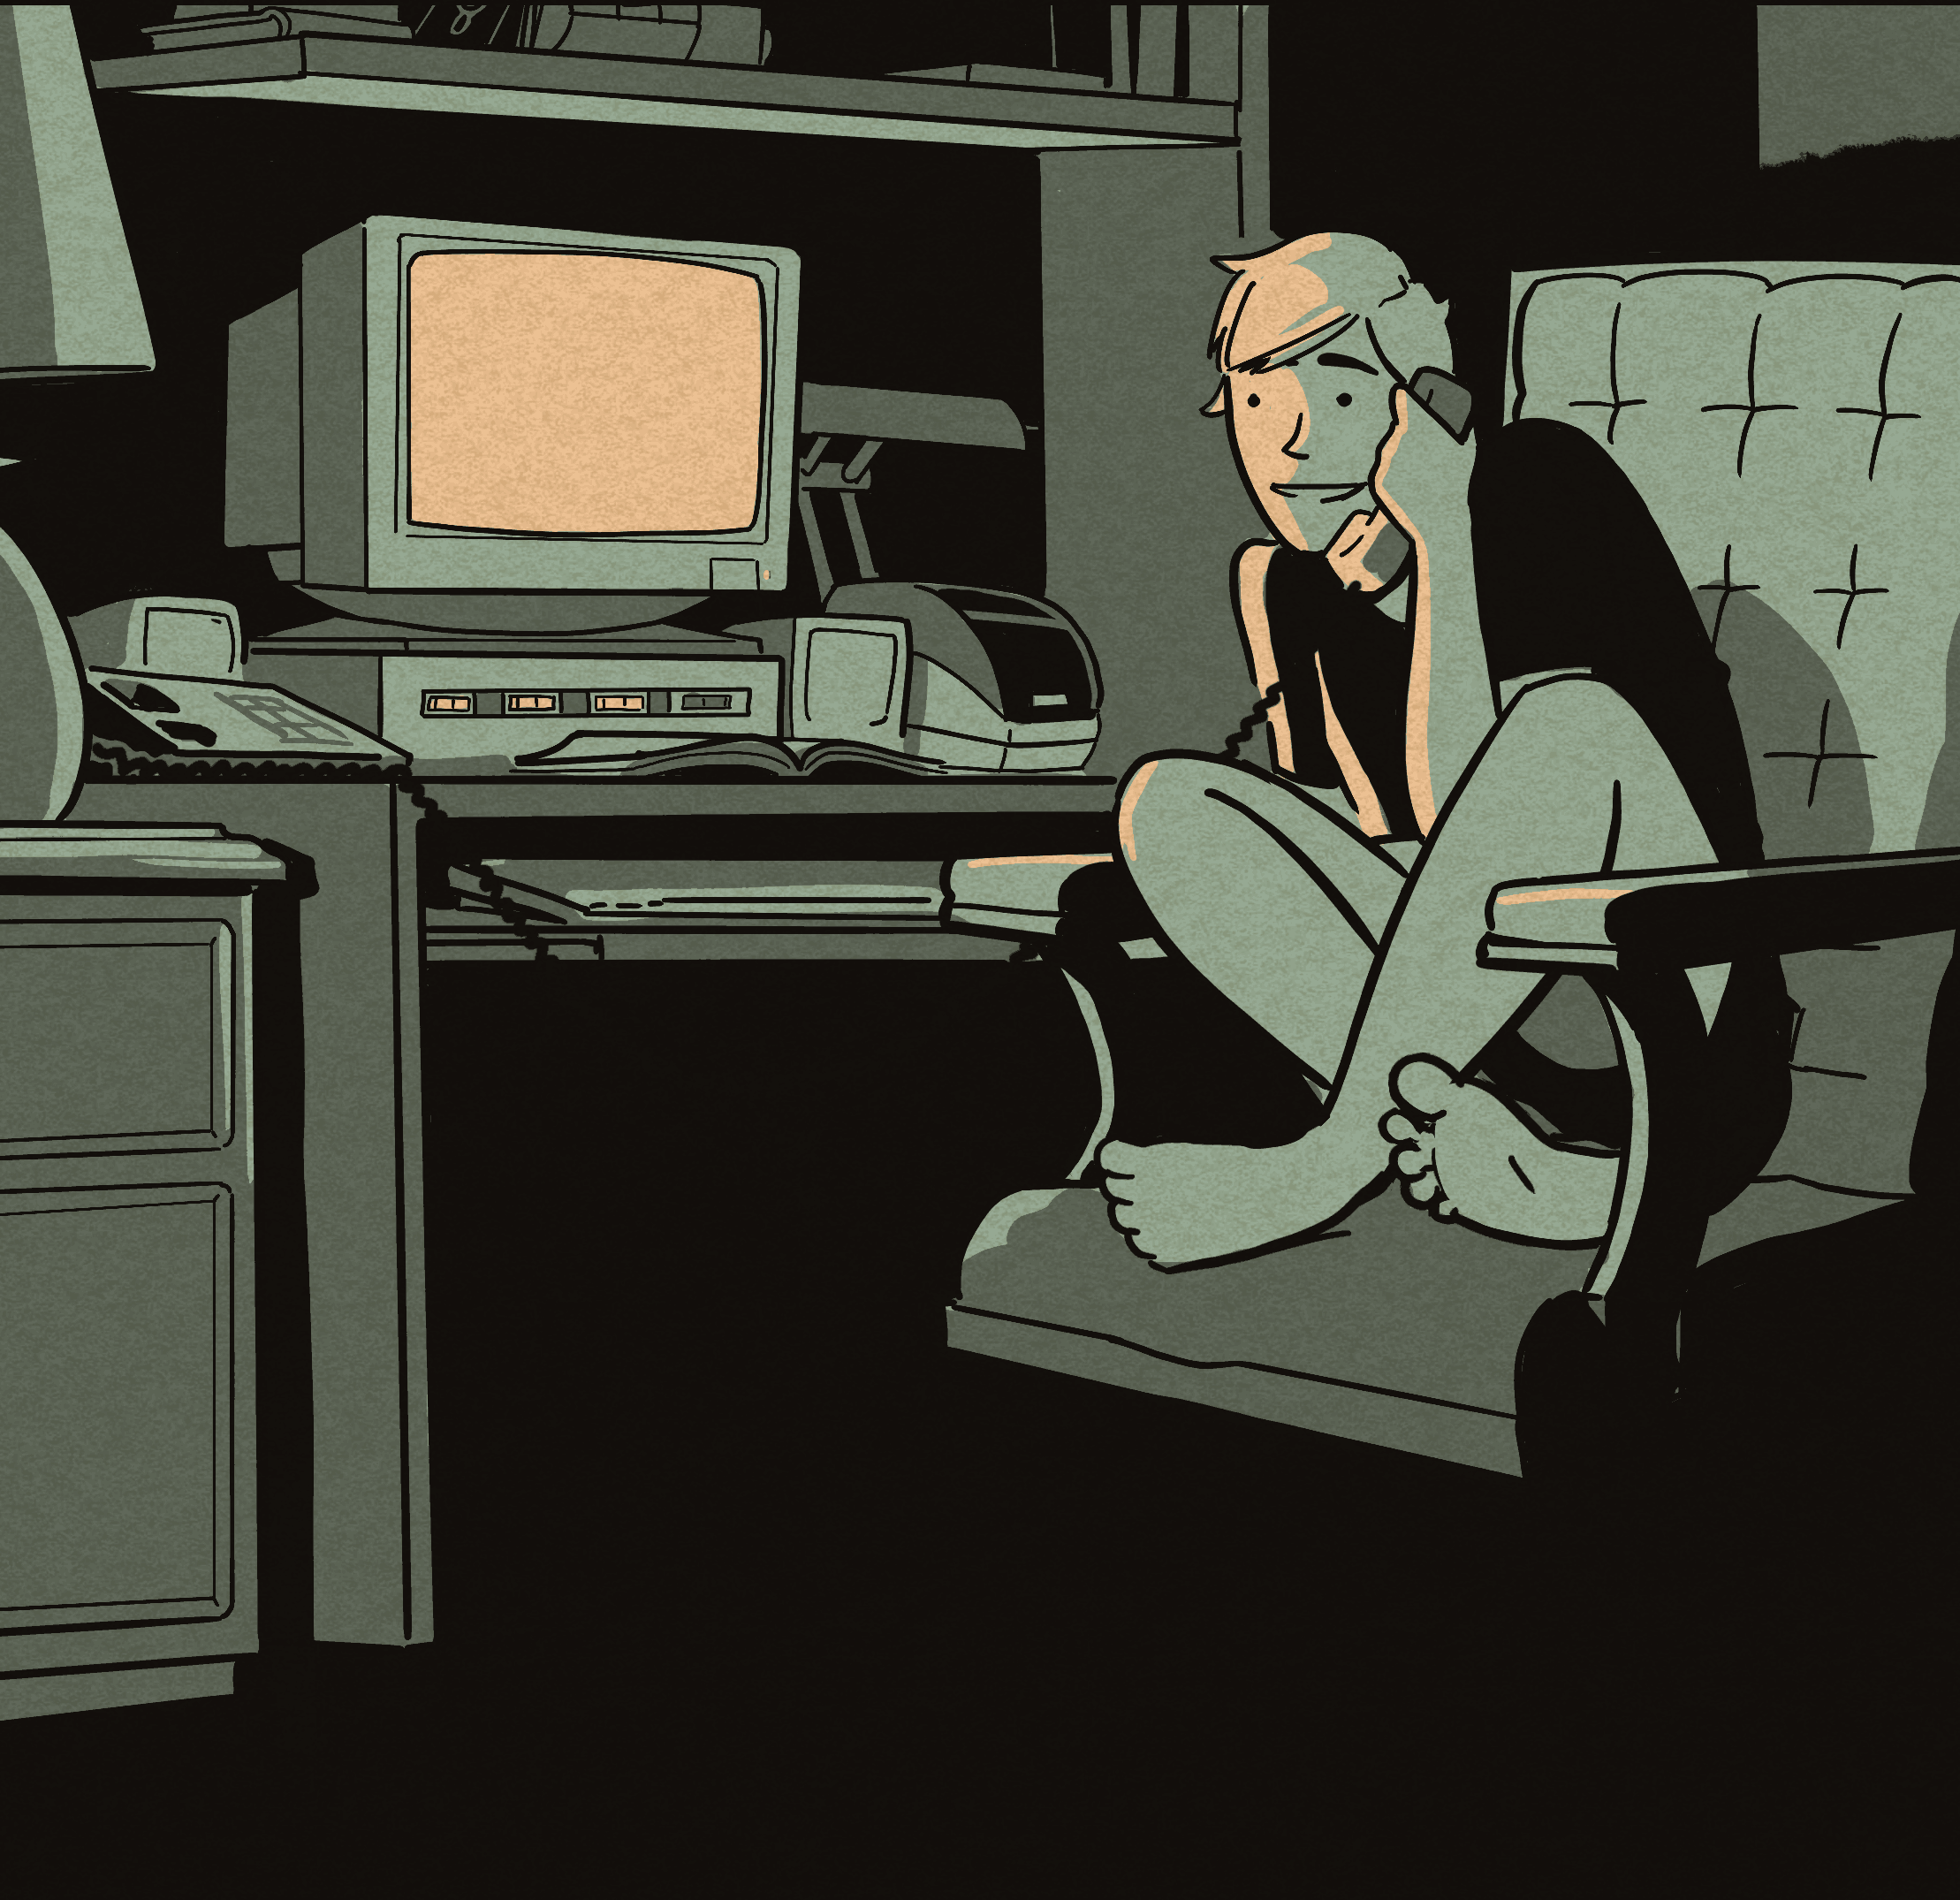 A print and web comic series about early 90's kids, making life threatening decisions over the early internet. -